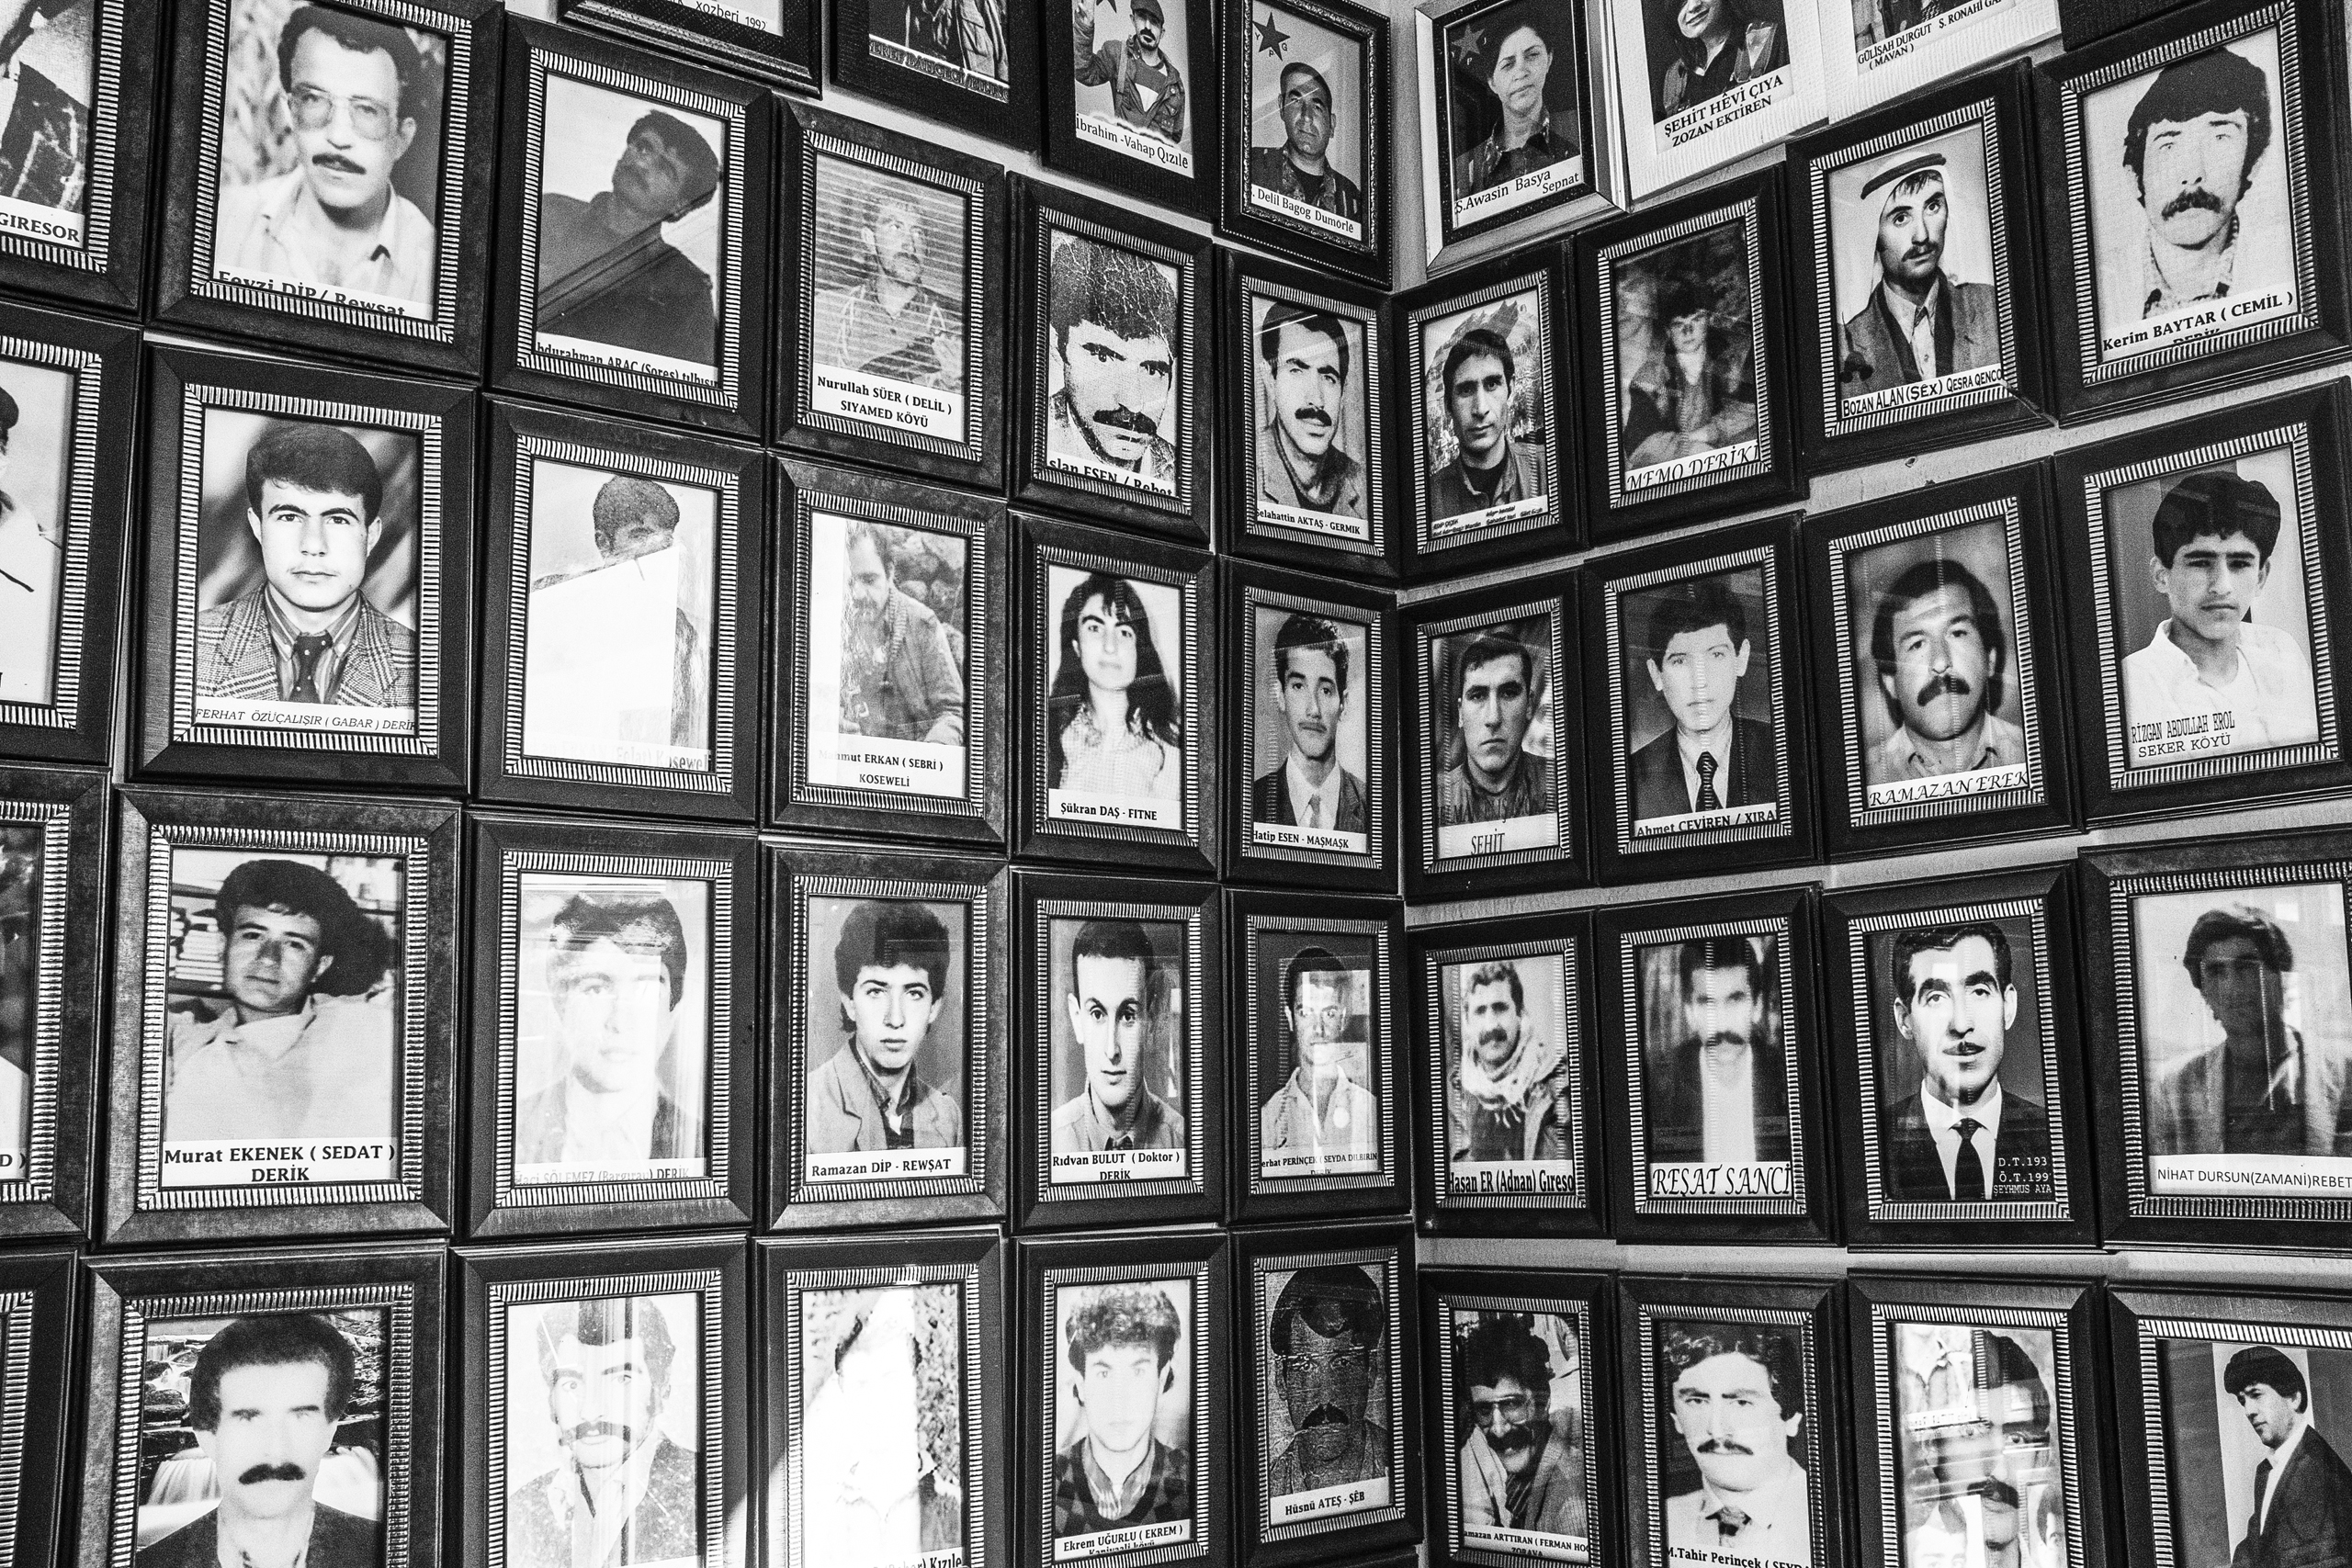 Portraits of Derik's Kurdistan Workers Party (PKK) members  who have been killed by Turkish security forces over the last 40 years hang on a wall, Derik, Turkey, Dec. 2015.